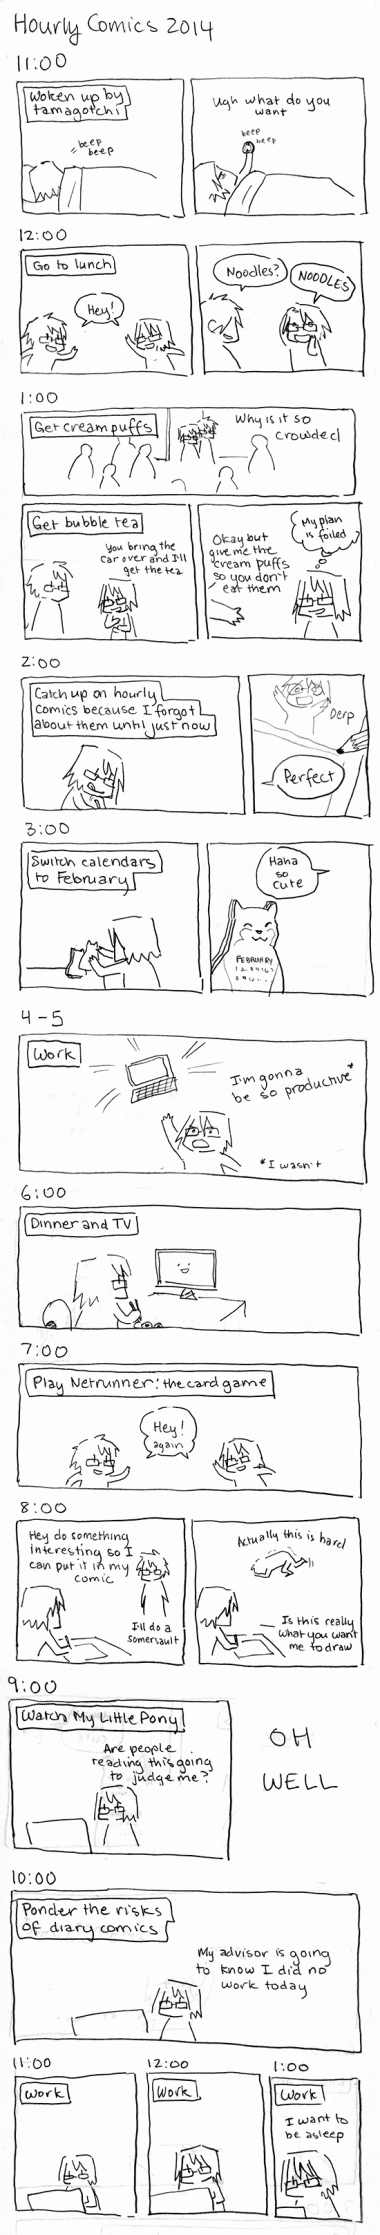 Hourly Comics Day 2014